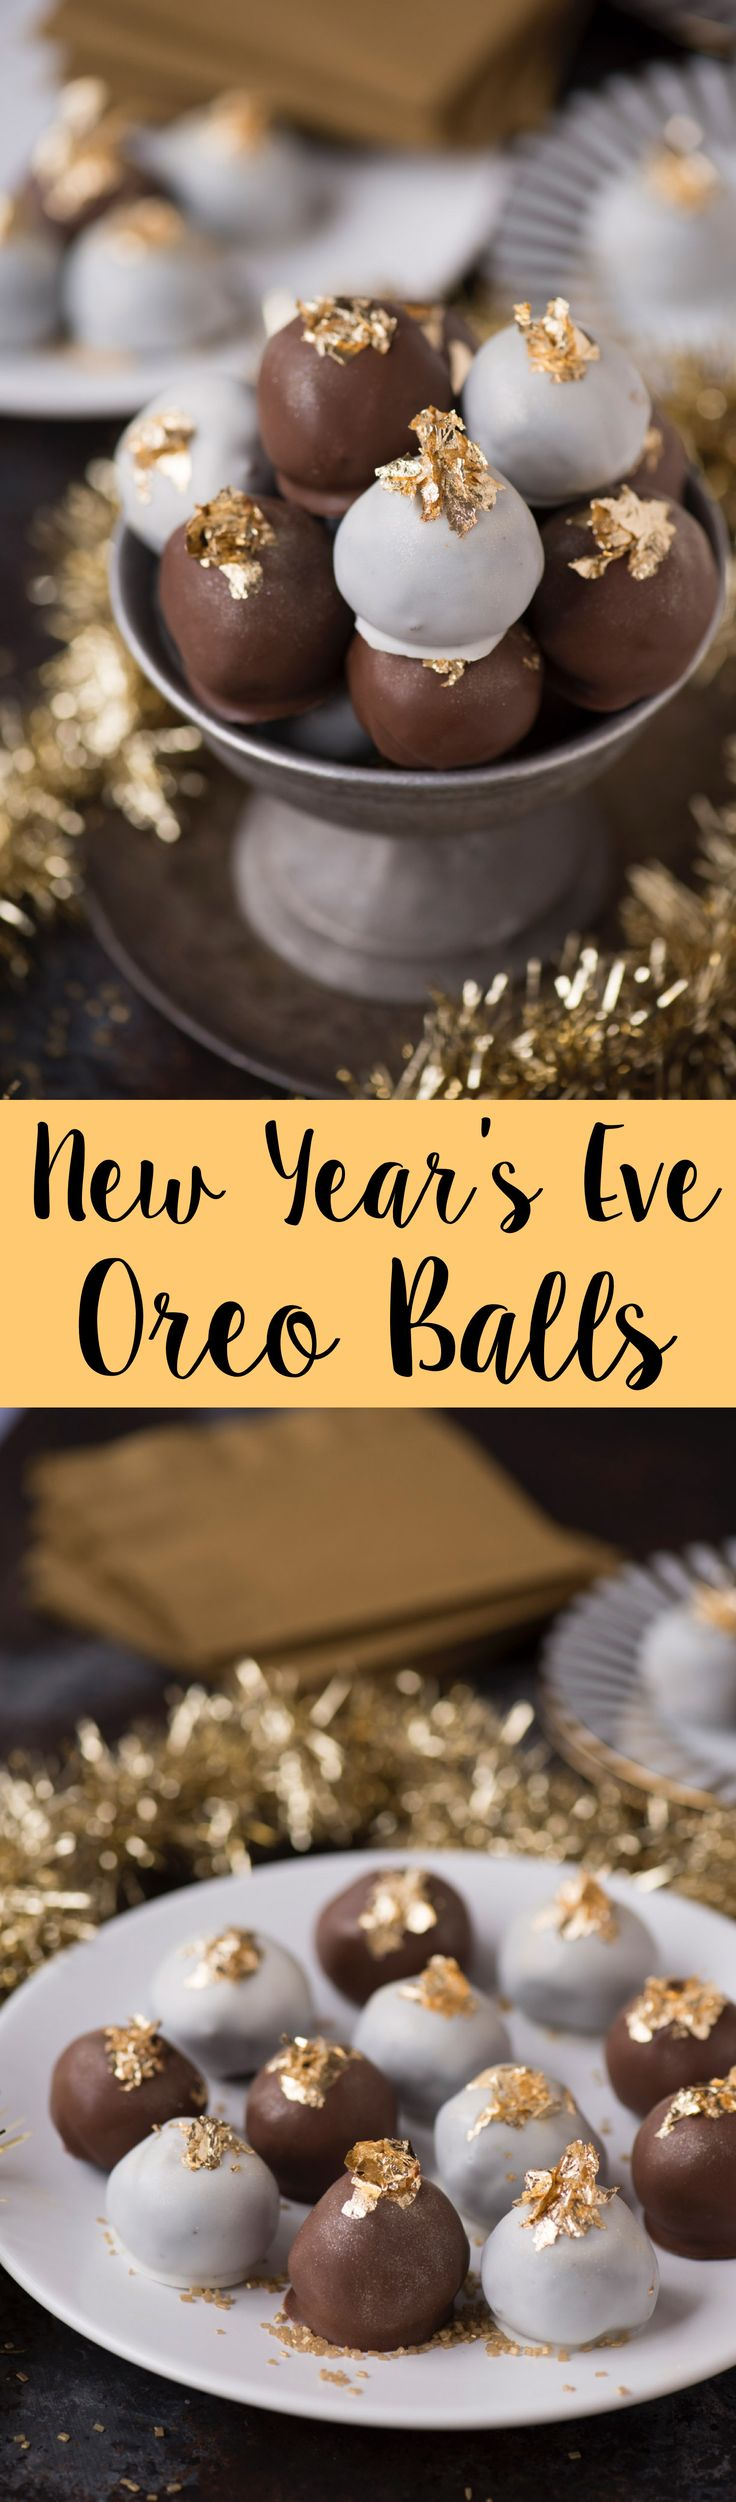 Gold and glittery New Year's Eve oreo balls! Dipped in chocolate and white chocolate, decorated with edible gold leaf! Plus there is a star sprinkle hidden inside each!